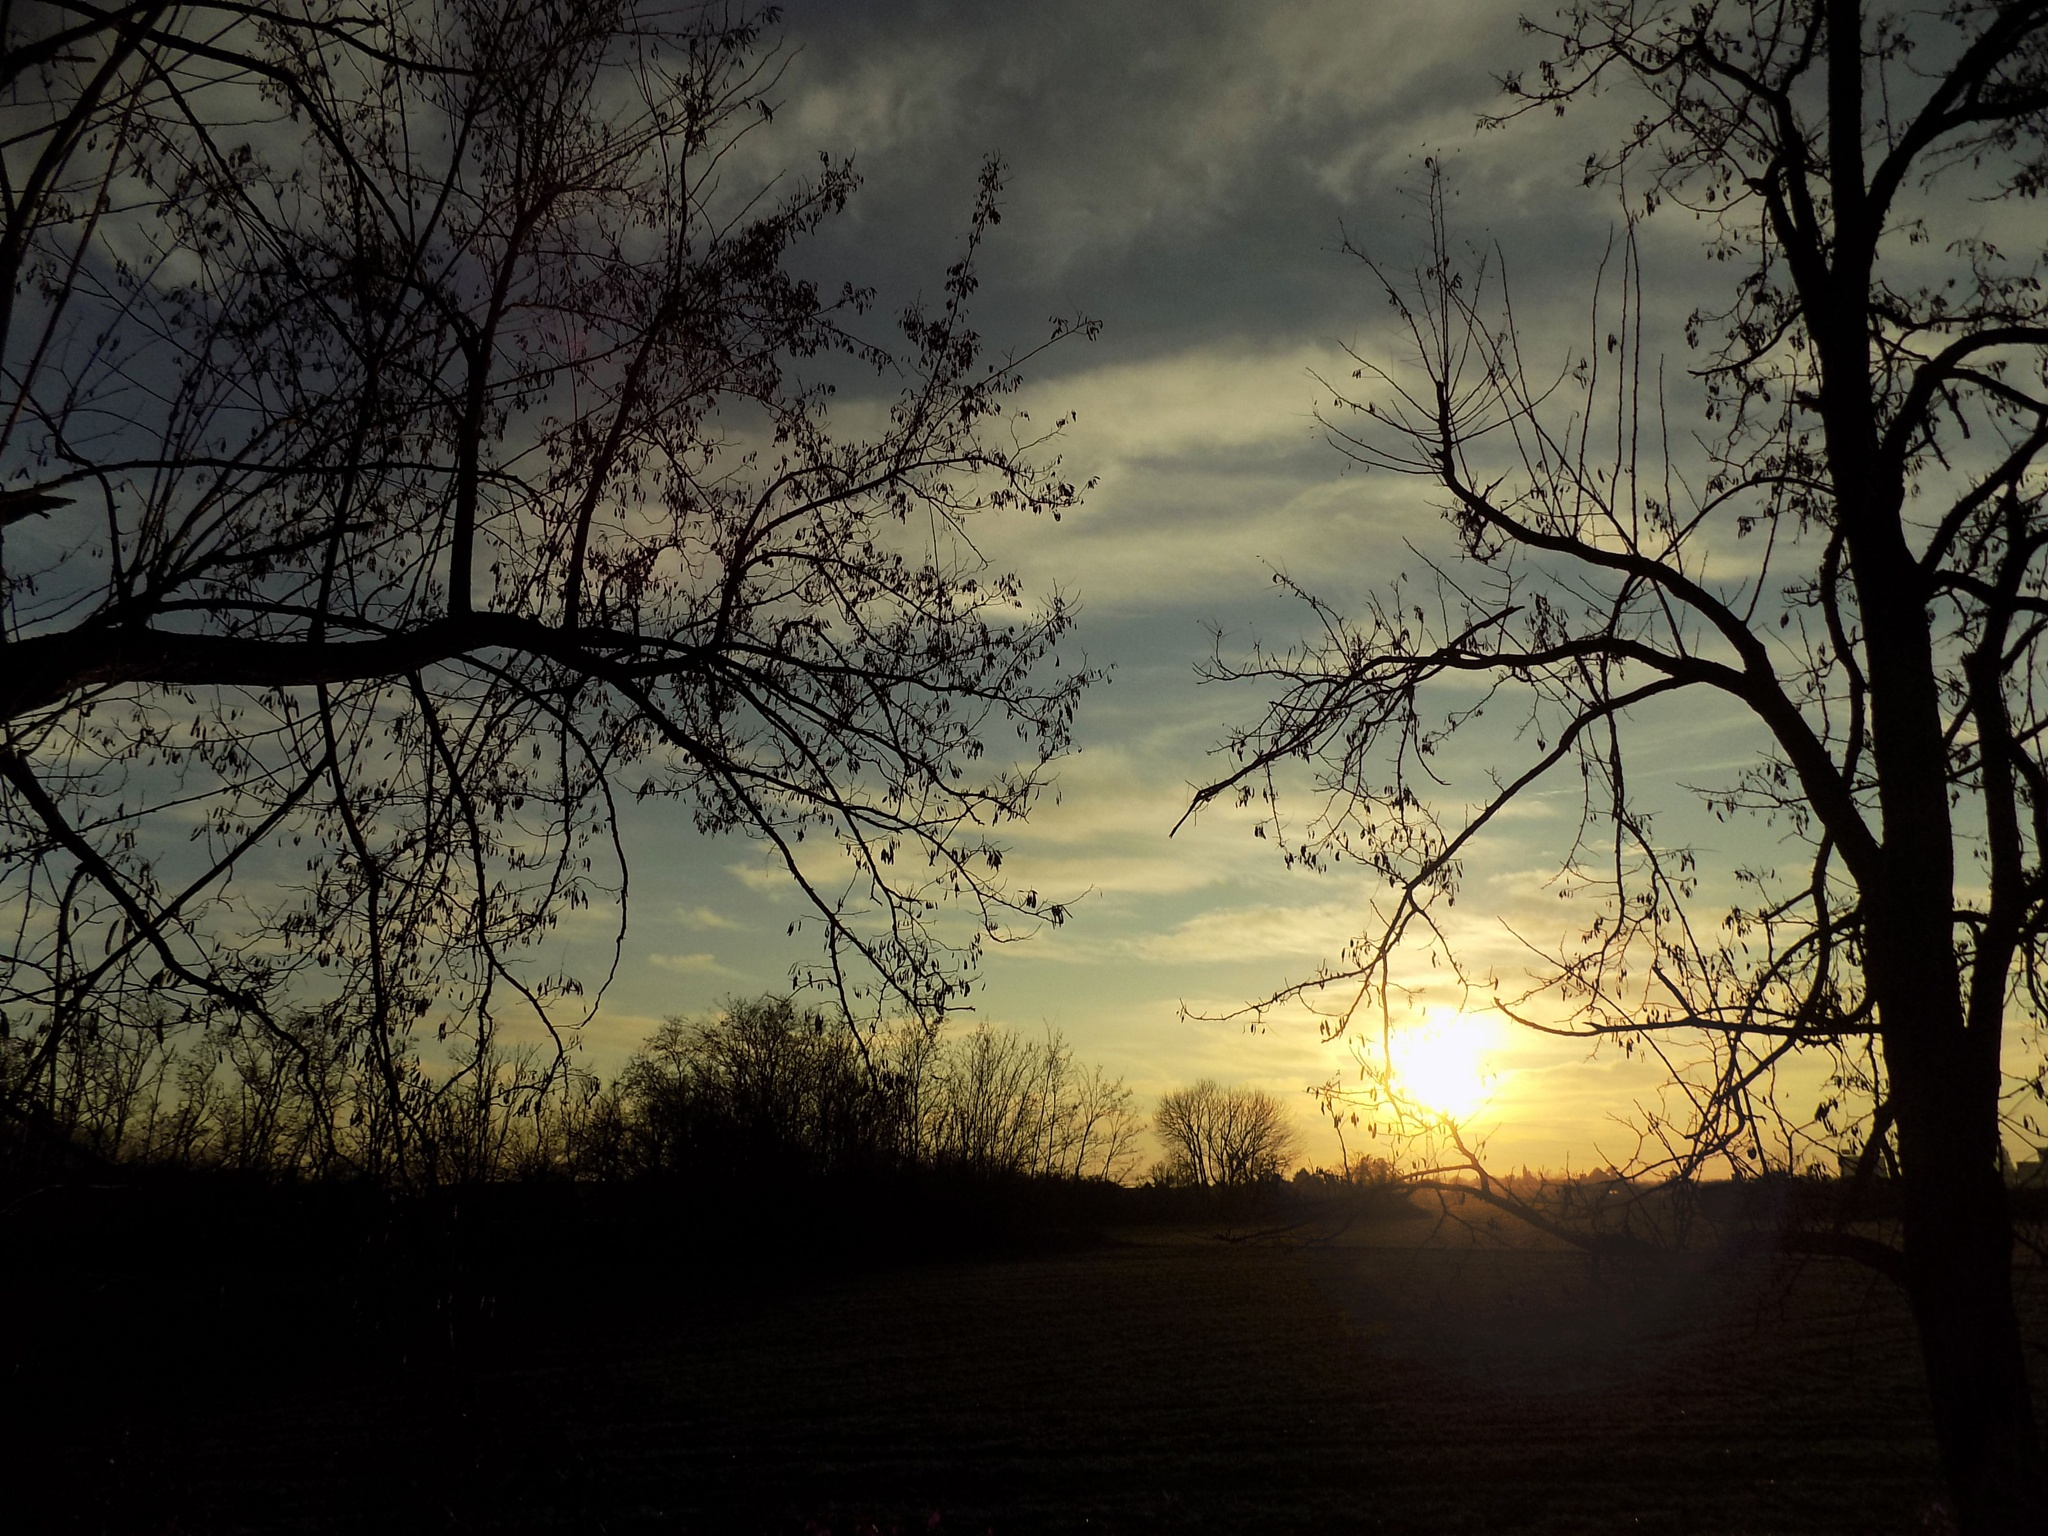 light and shade, of the sunset by Cesare Vatrano